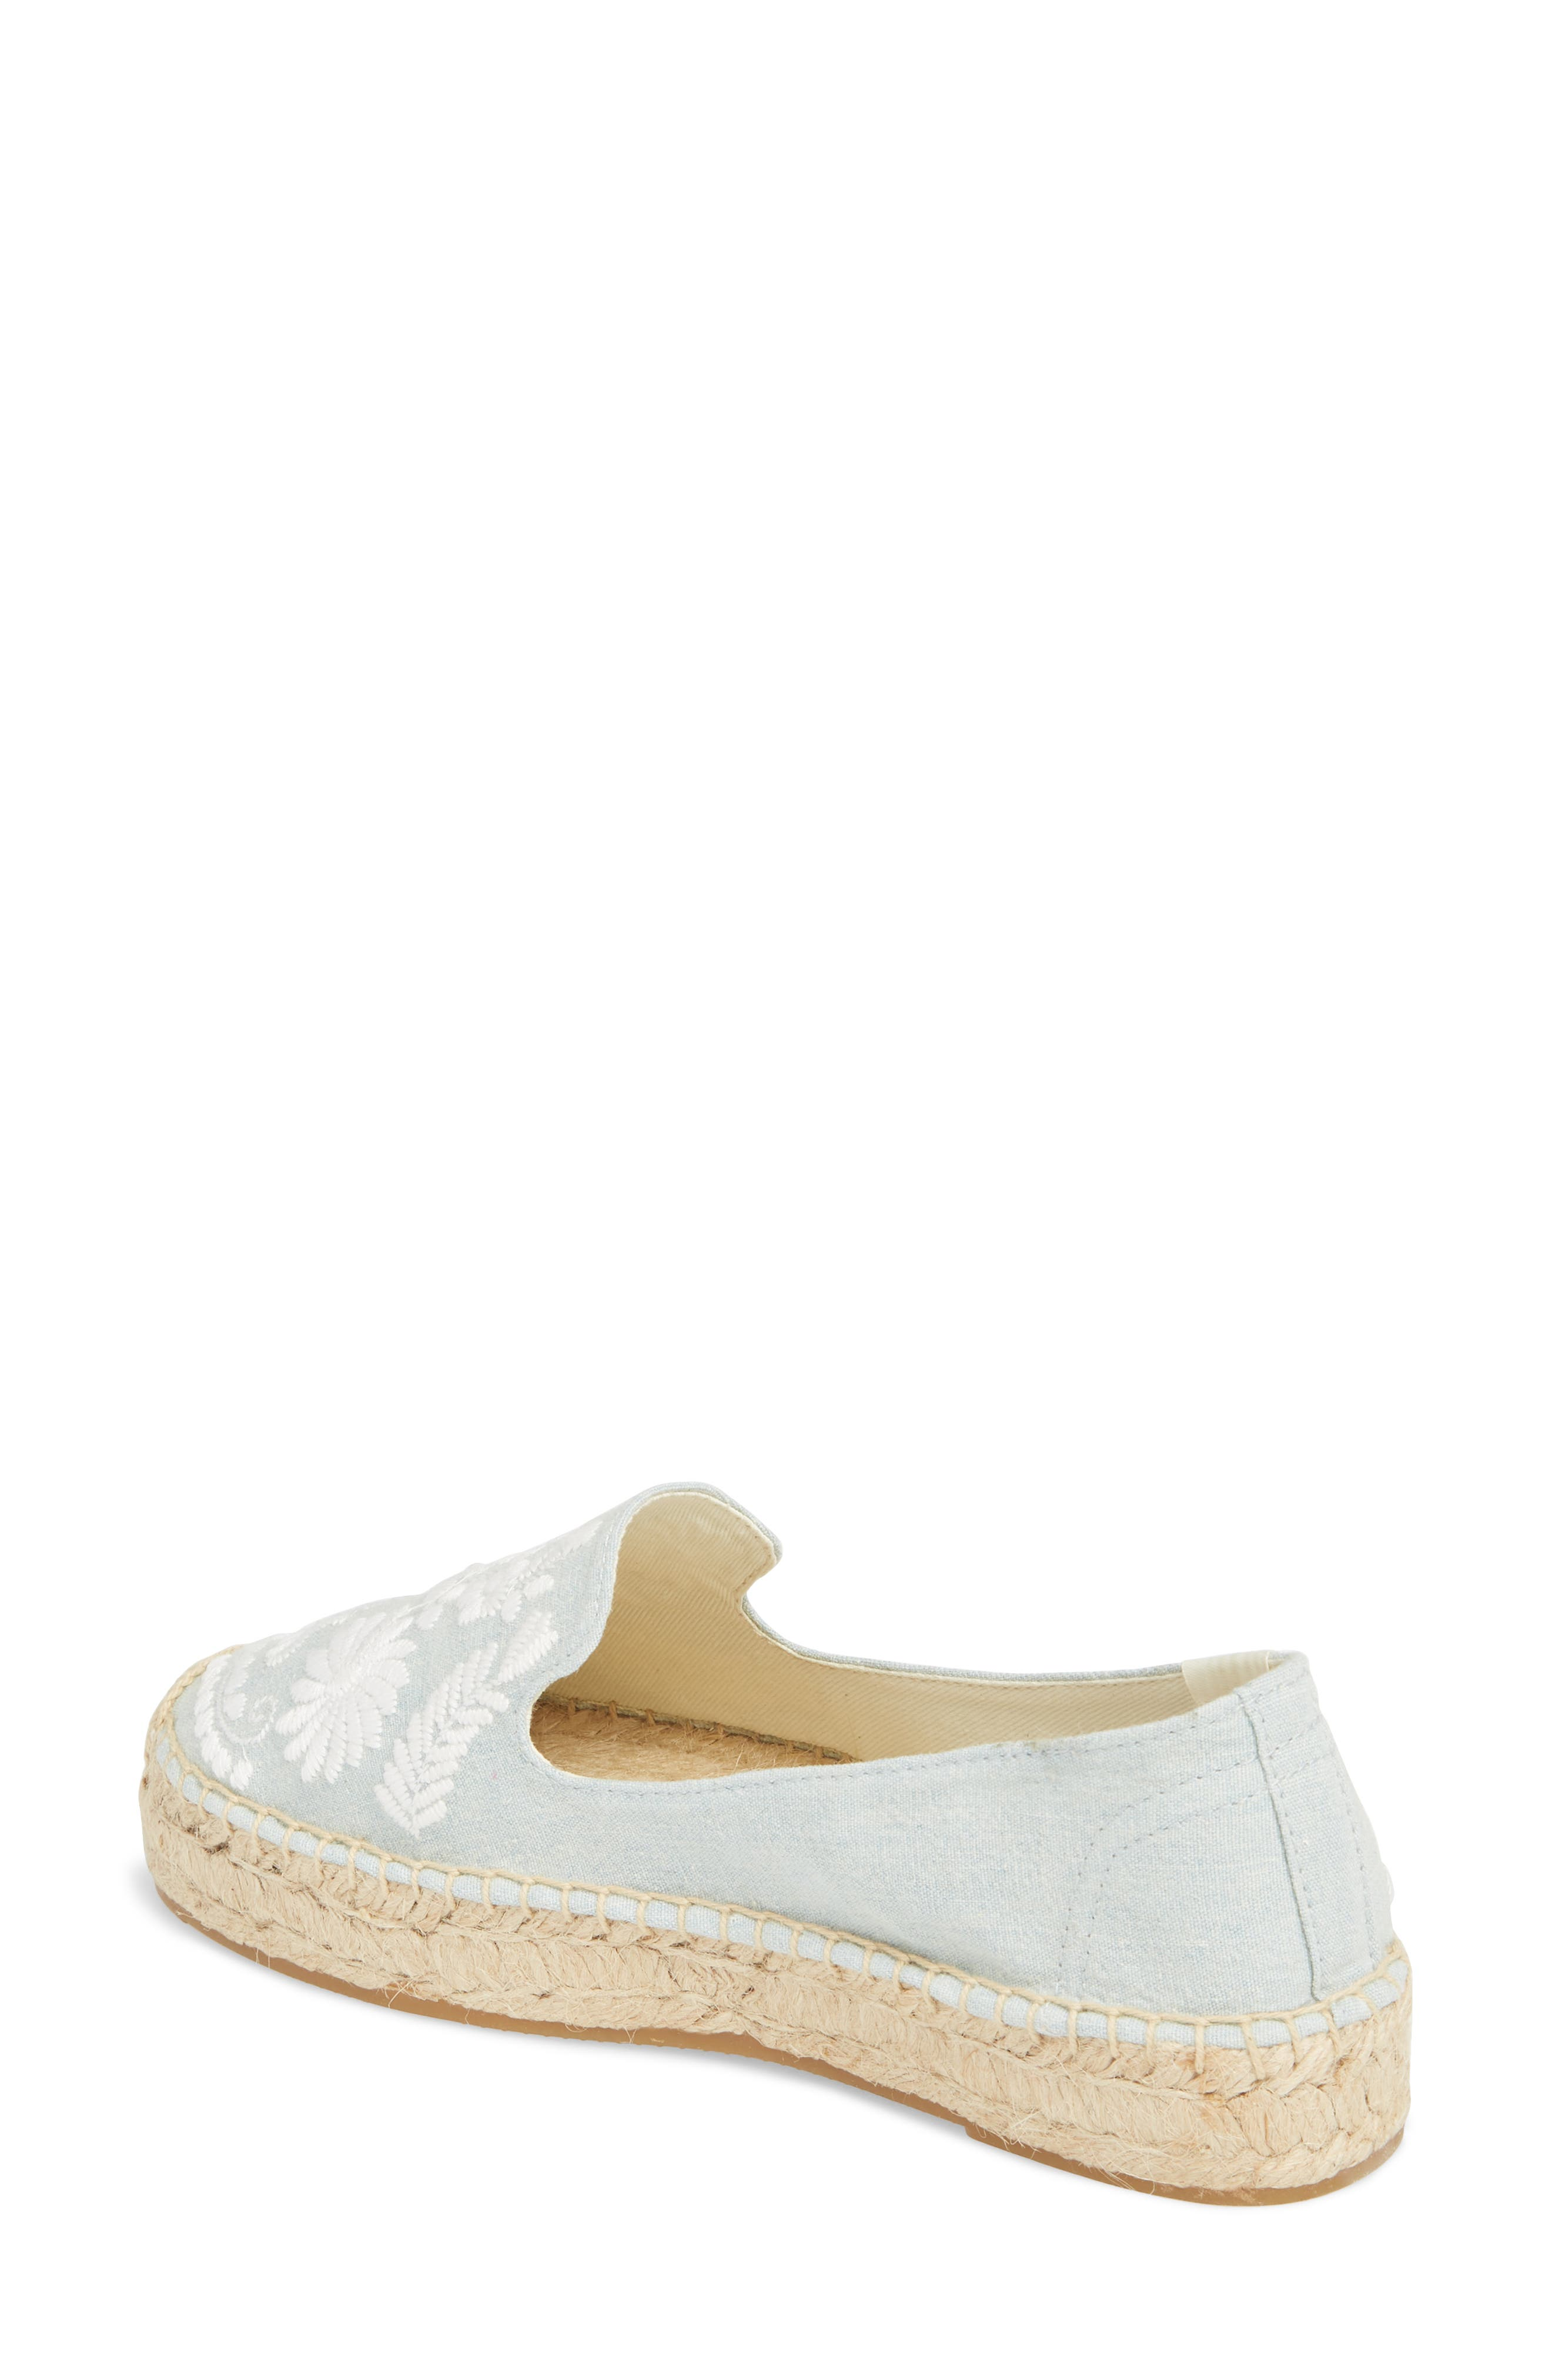 Ibiza Embroidered Loafer Espadrille,                             Alternate thumbnail 2, color,                             CHAMBRAY